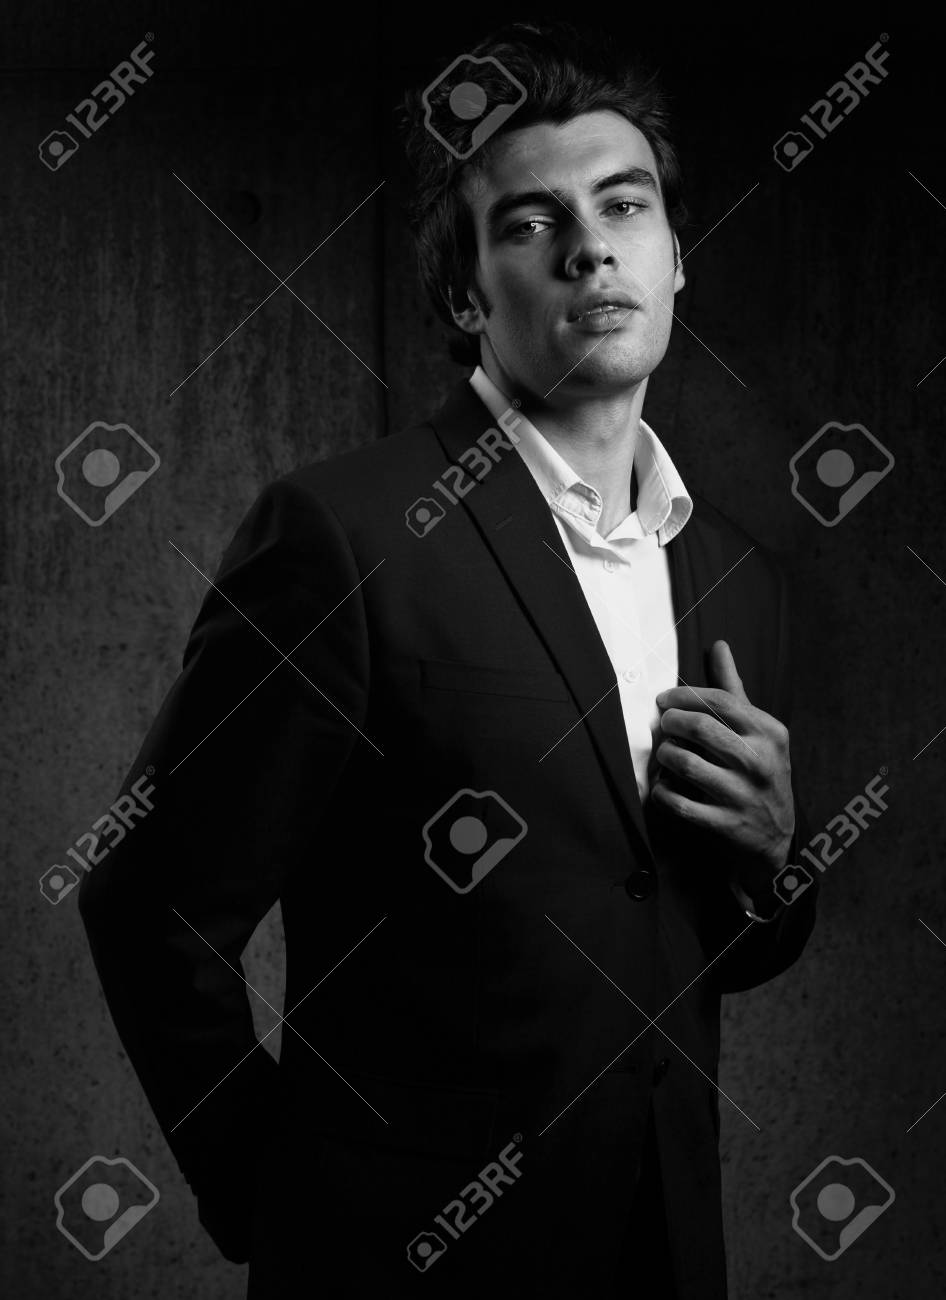 Handsome male model posing in fashion suit and white style shirt looking on dark shadow background